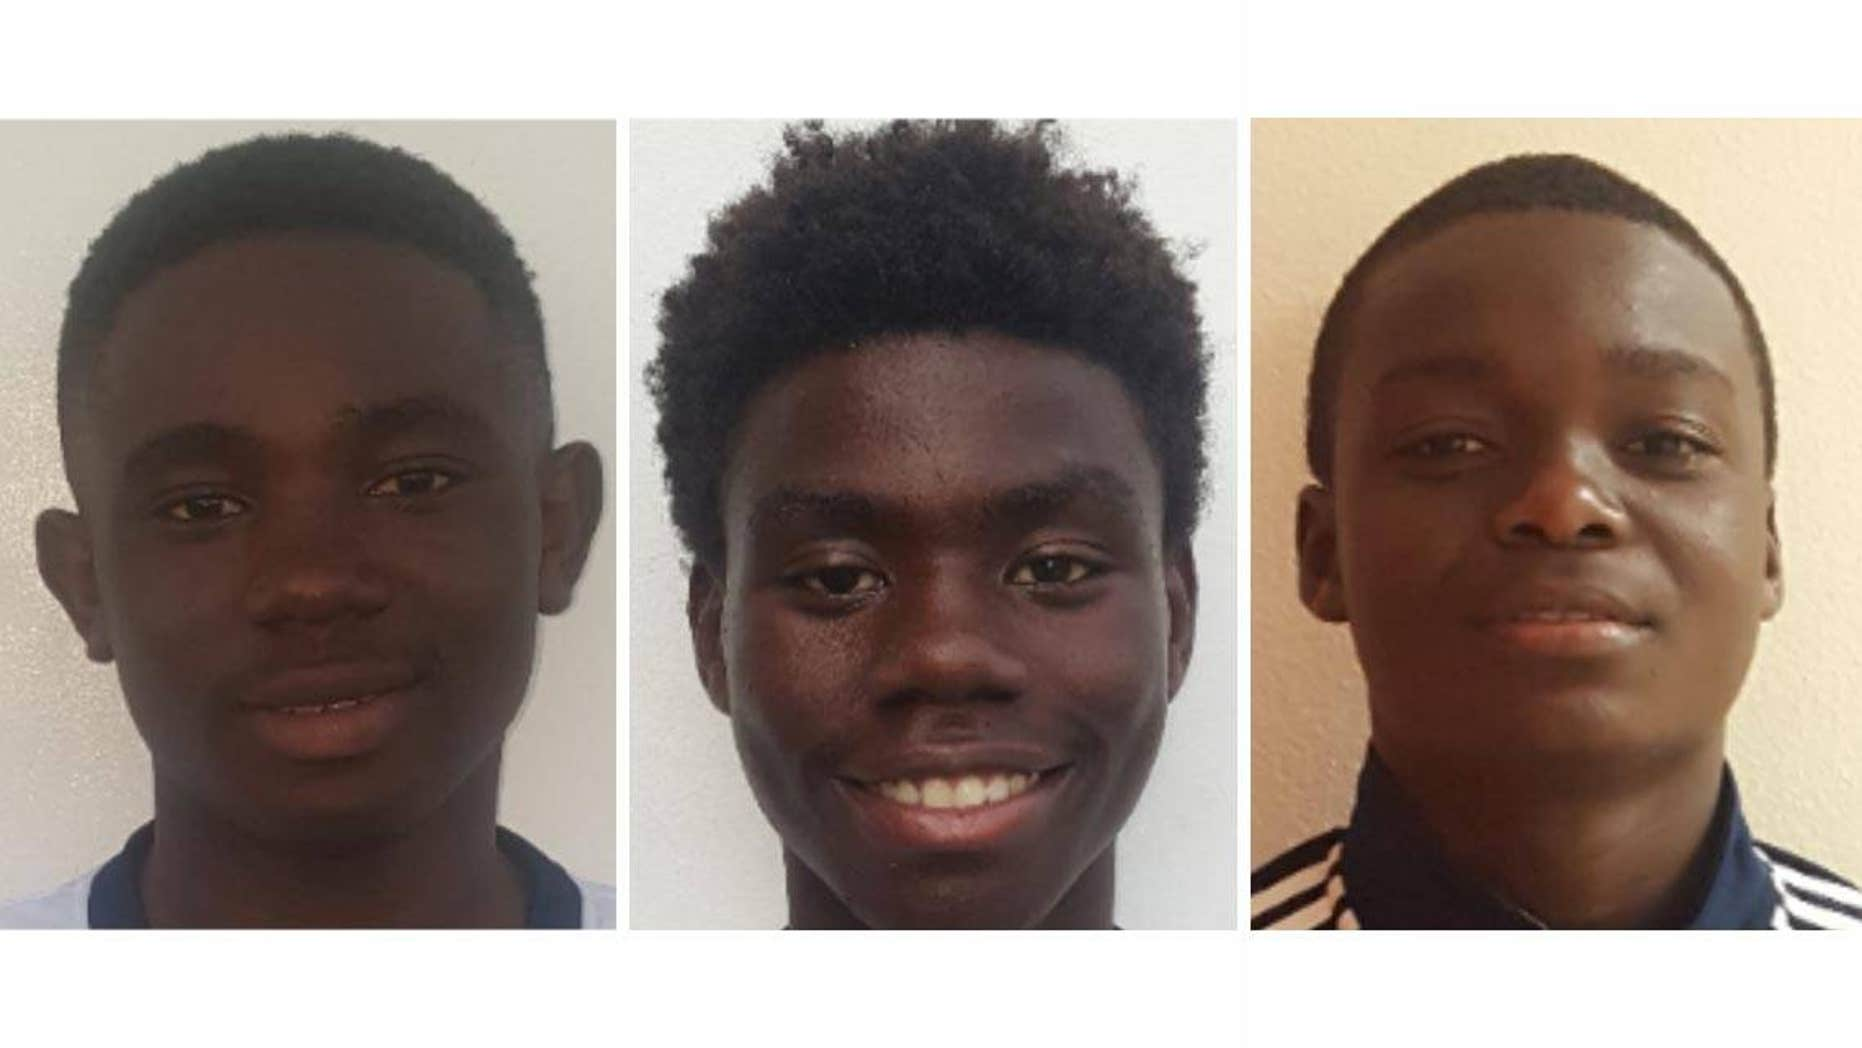 Three Teen Soccer Players Struck By Car, Killed, Identified